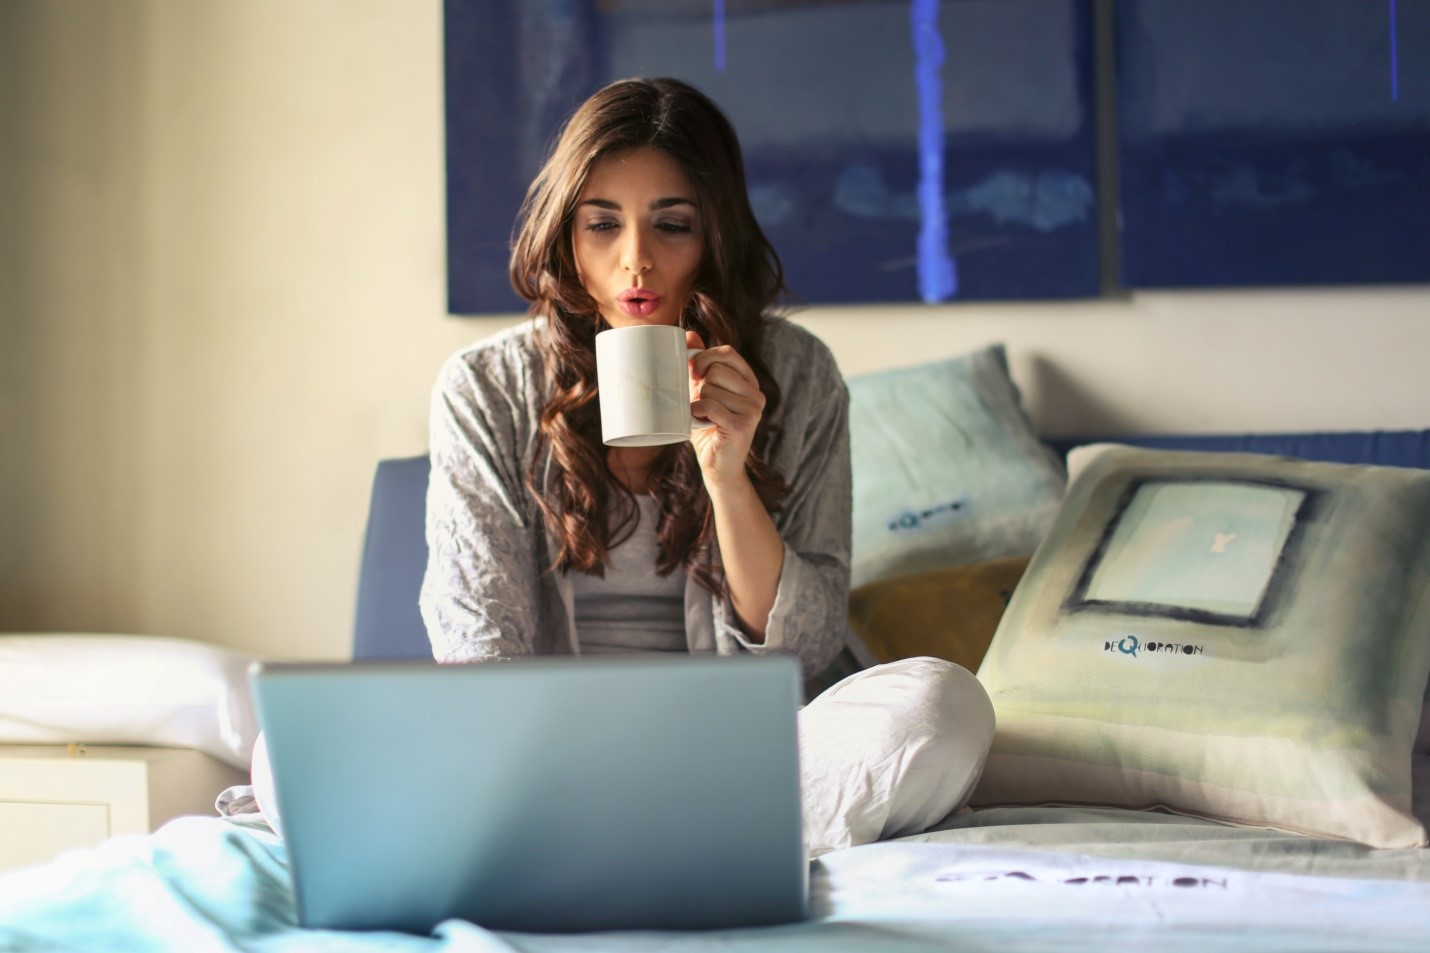 Career Break - image of a woman sipping coffee and working on her laptop